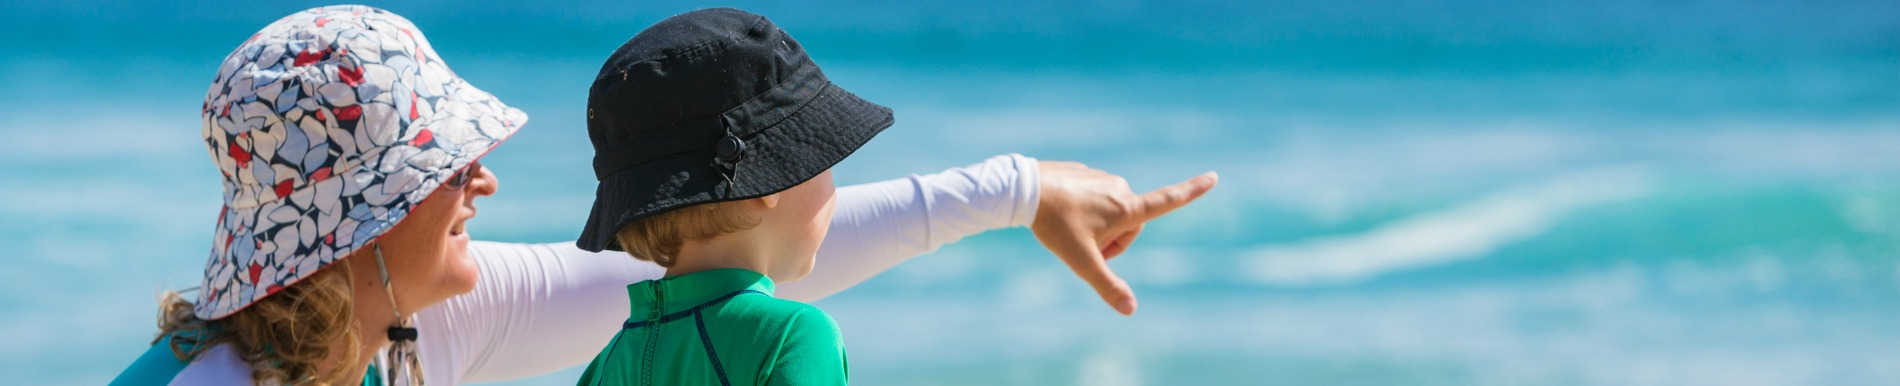 https://www.healthychildren.org/SiteCollectionImage-Homepage-Banners/mom_son_beach_hats_point.jpg